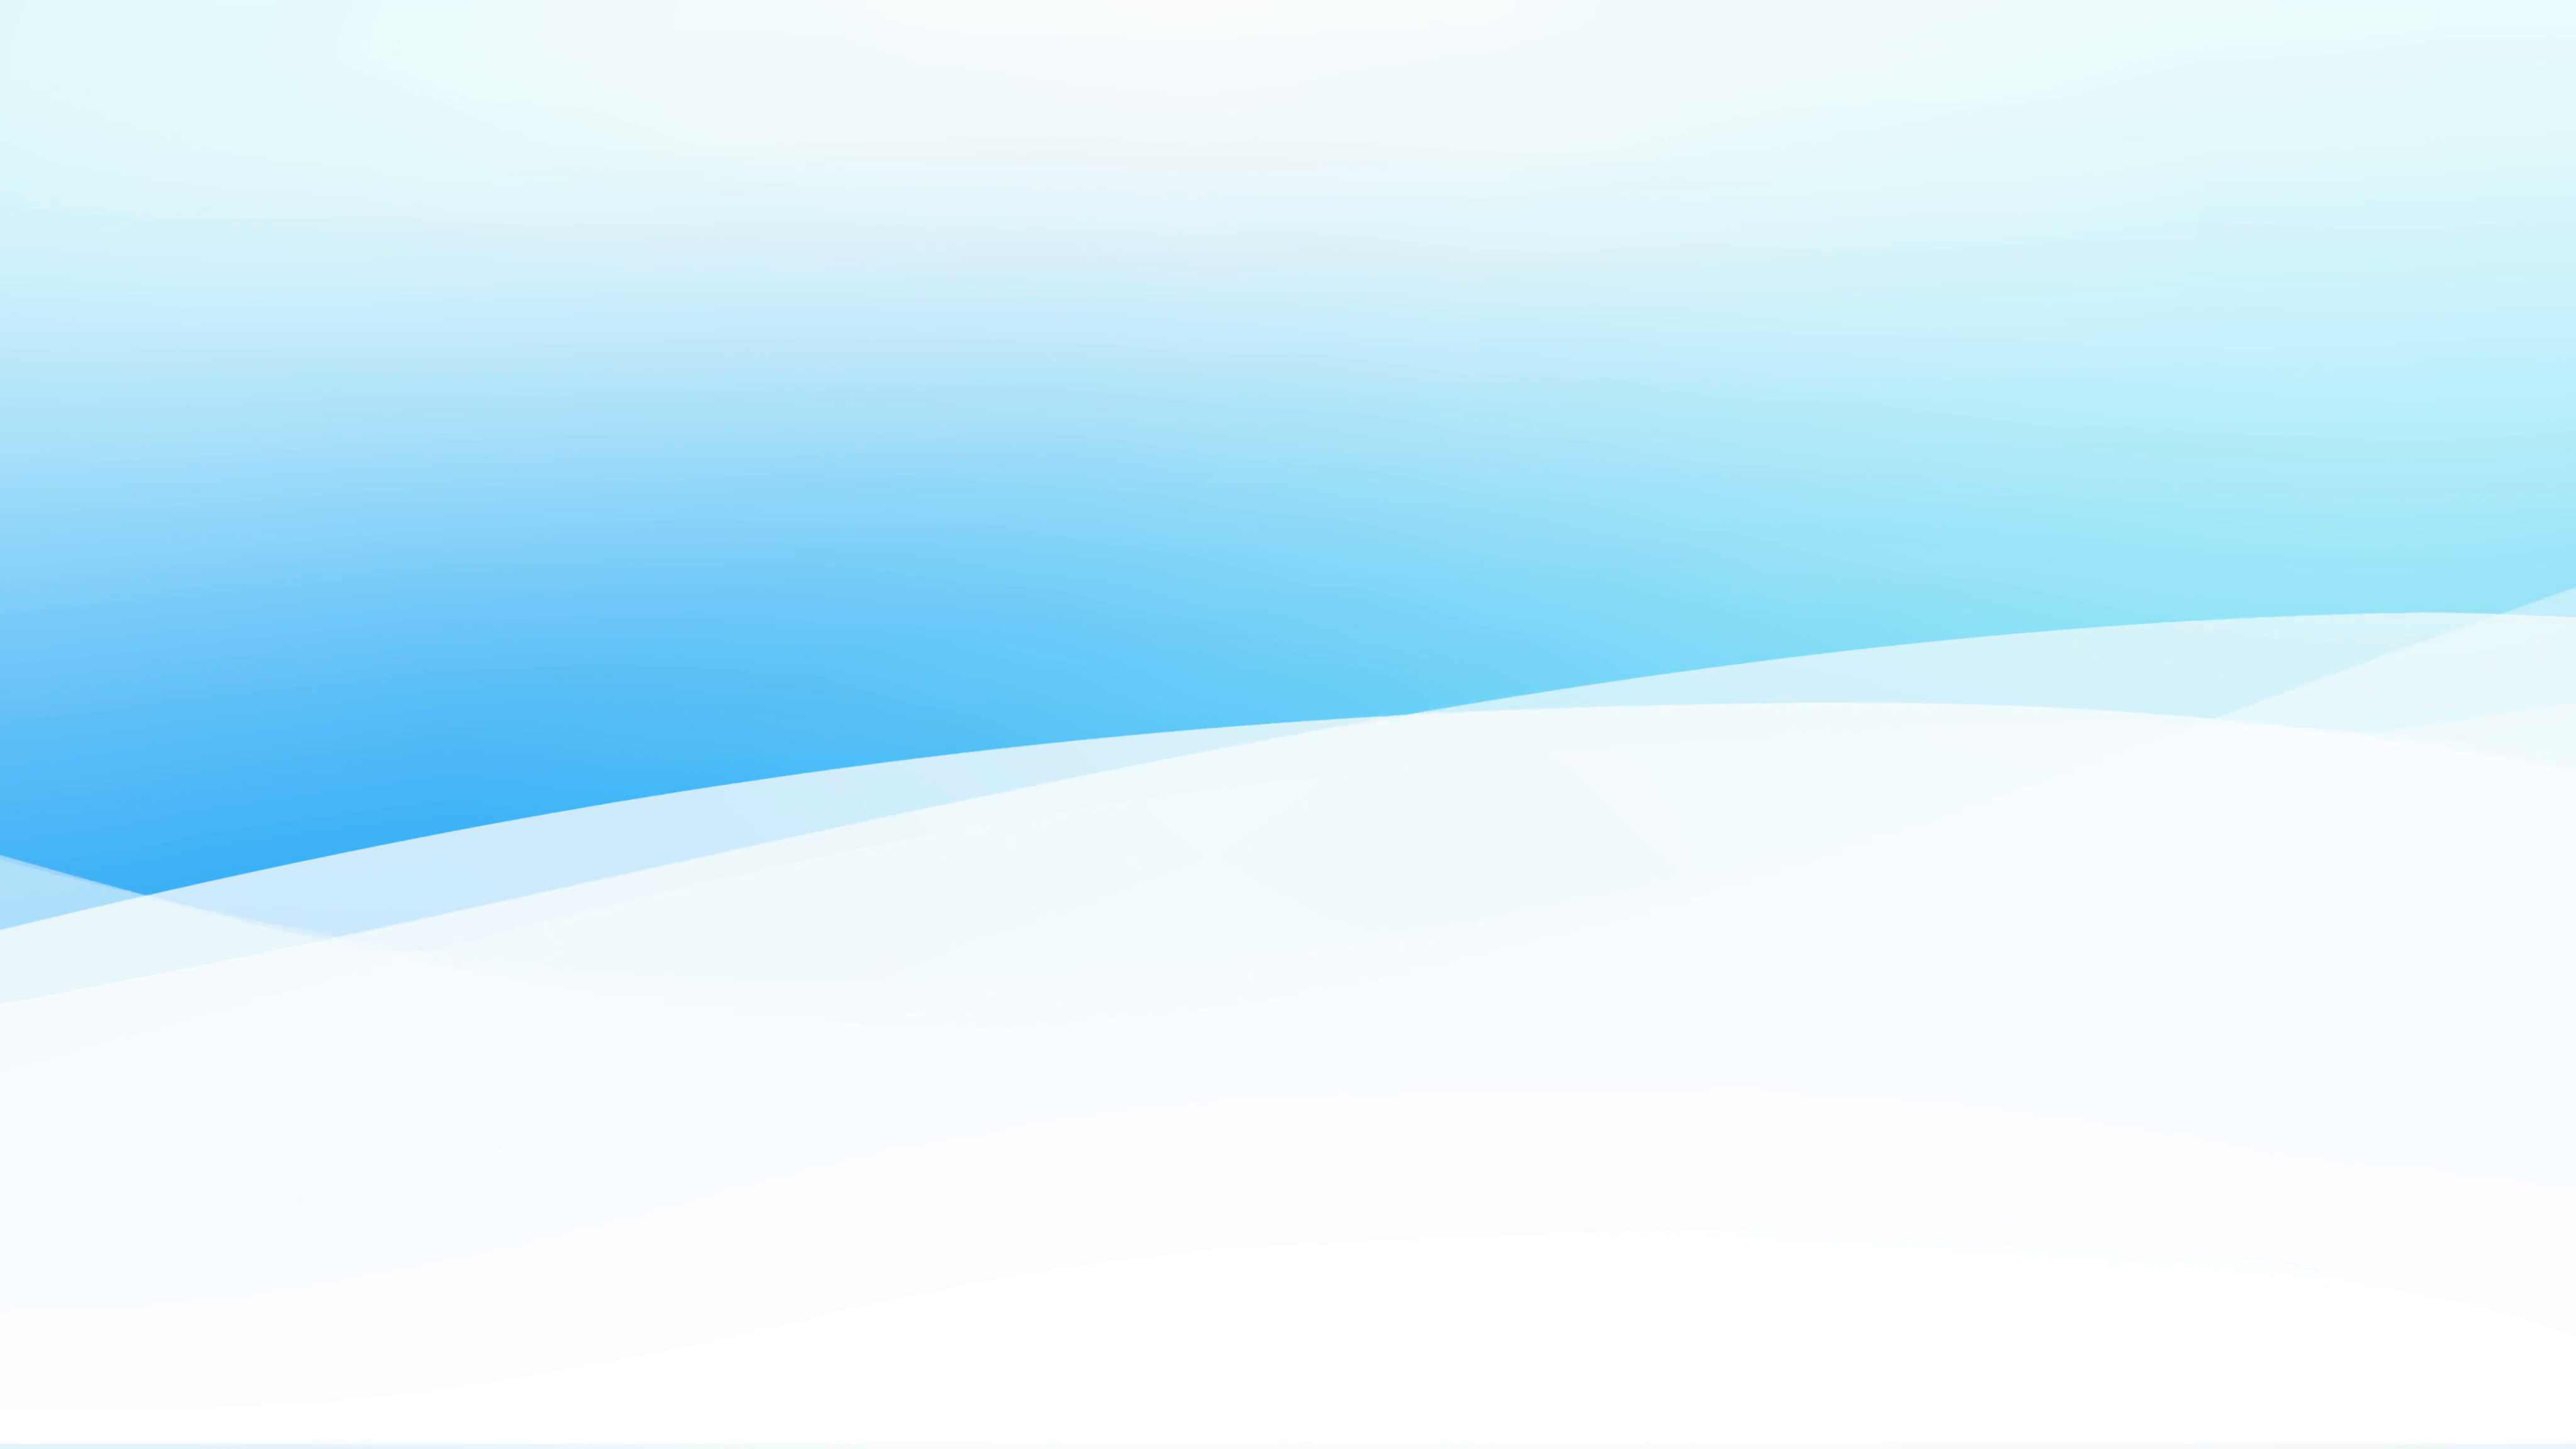 Blue And White Background Png 2 Png Image